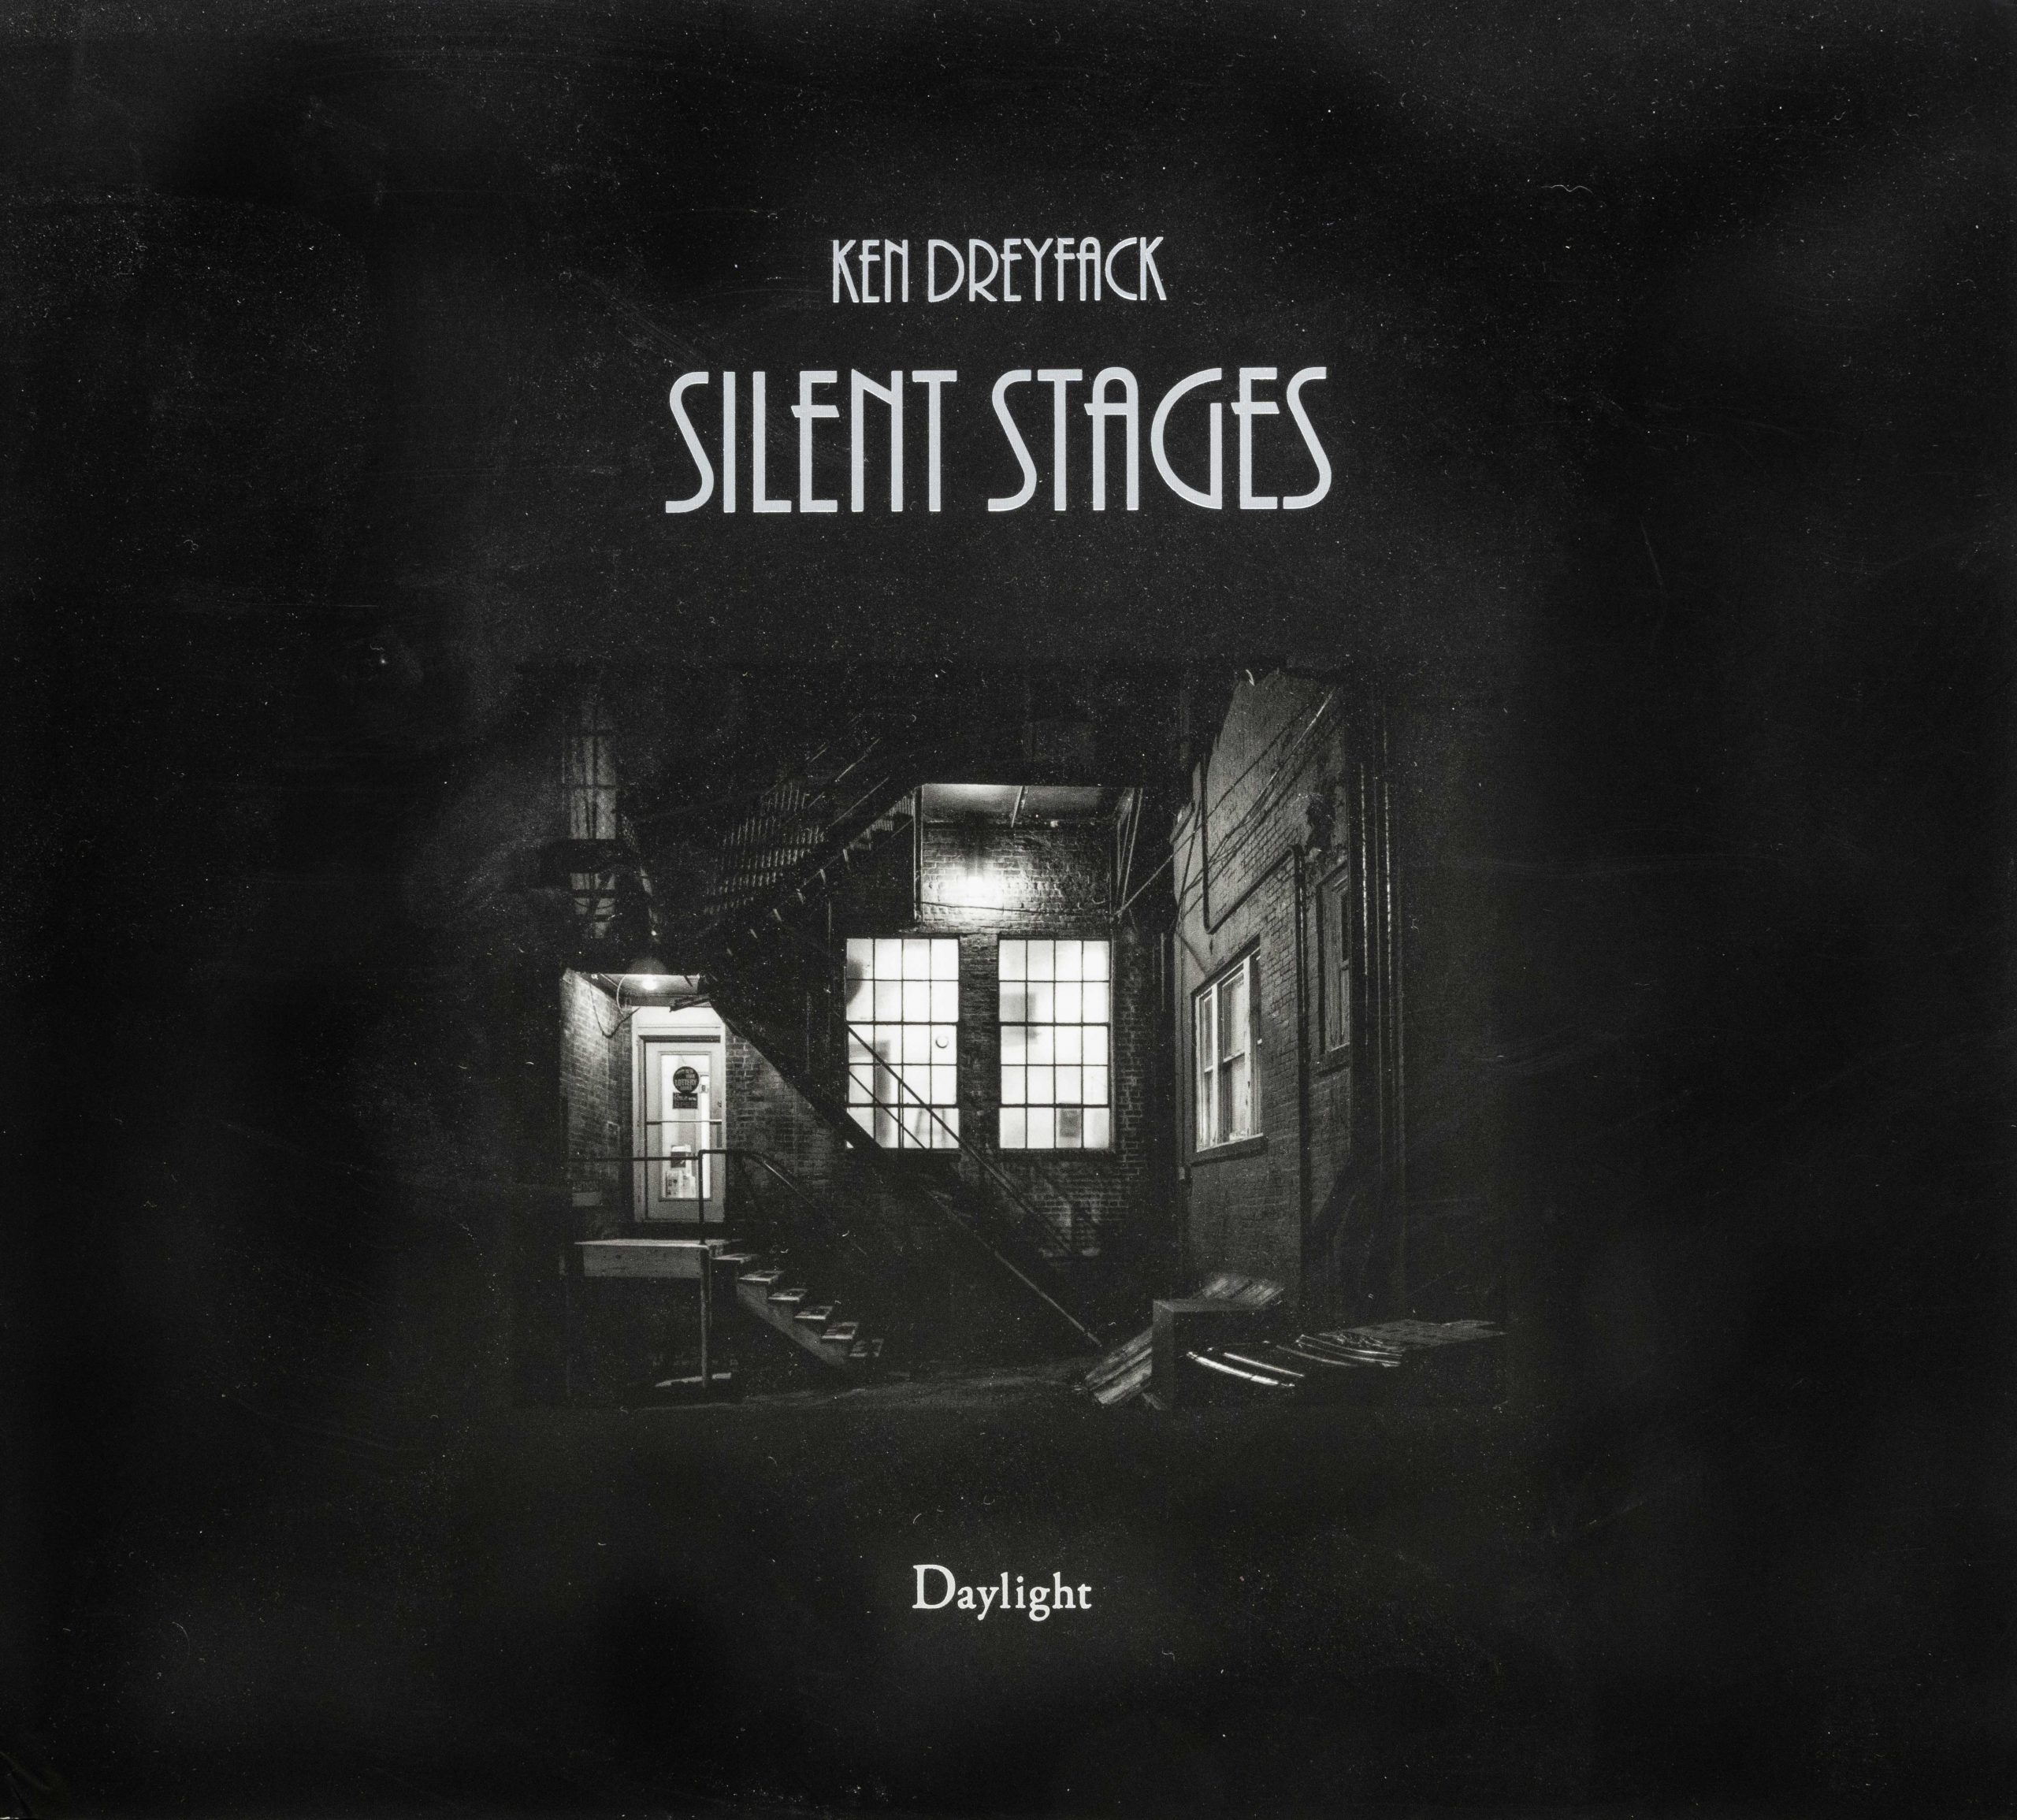 Book by Ken Dreyfack Silent Stages